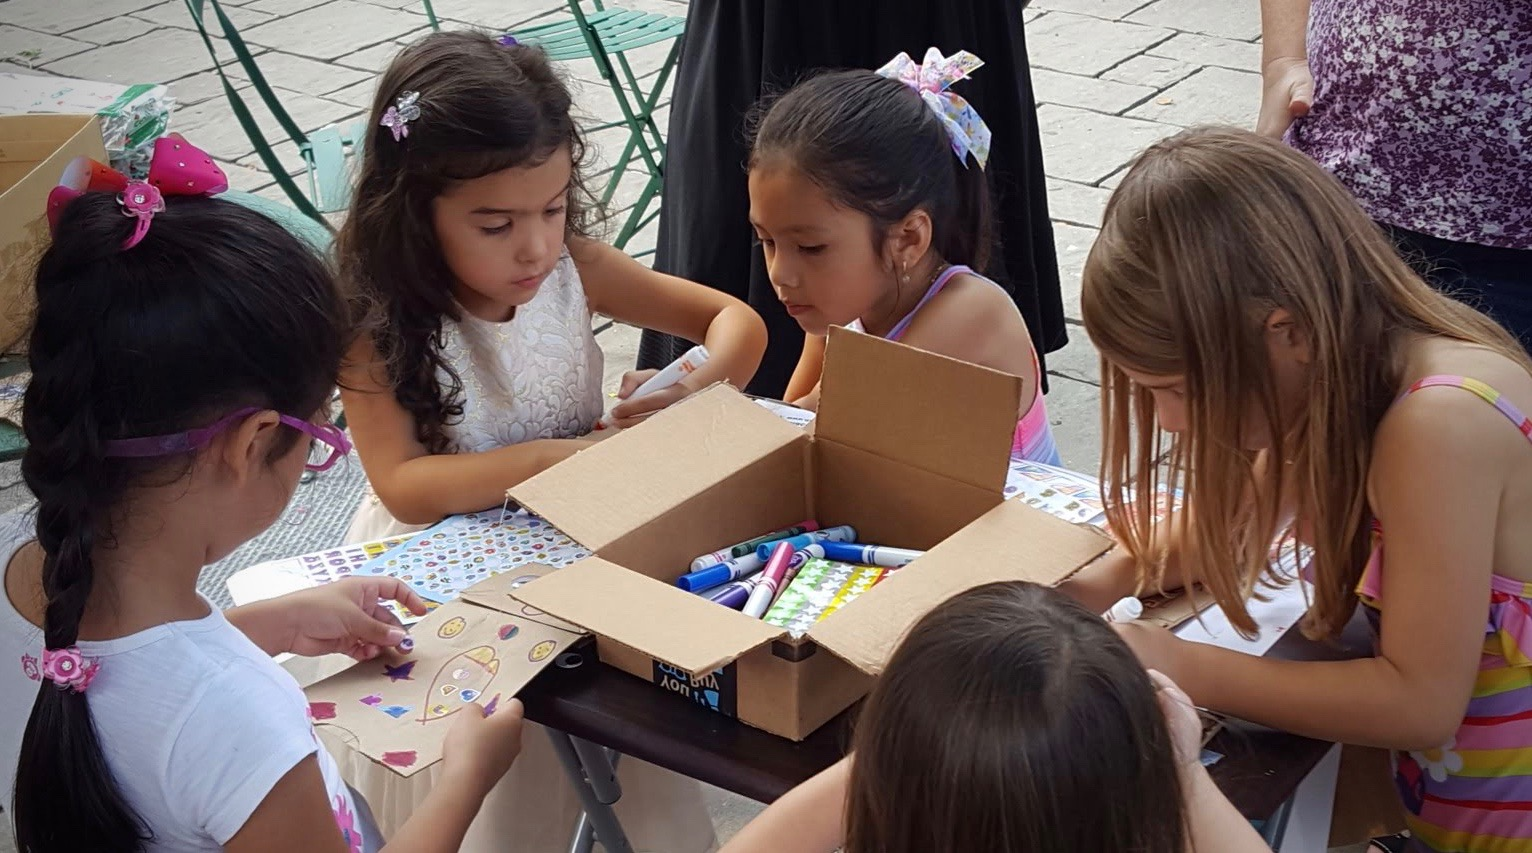 Kids make paper puppets with Firefly at the Viva la Comida street festival sponsored by the 82nd Street Partnership! September 2018.